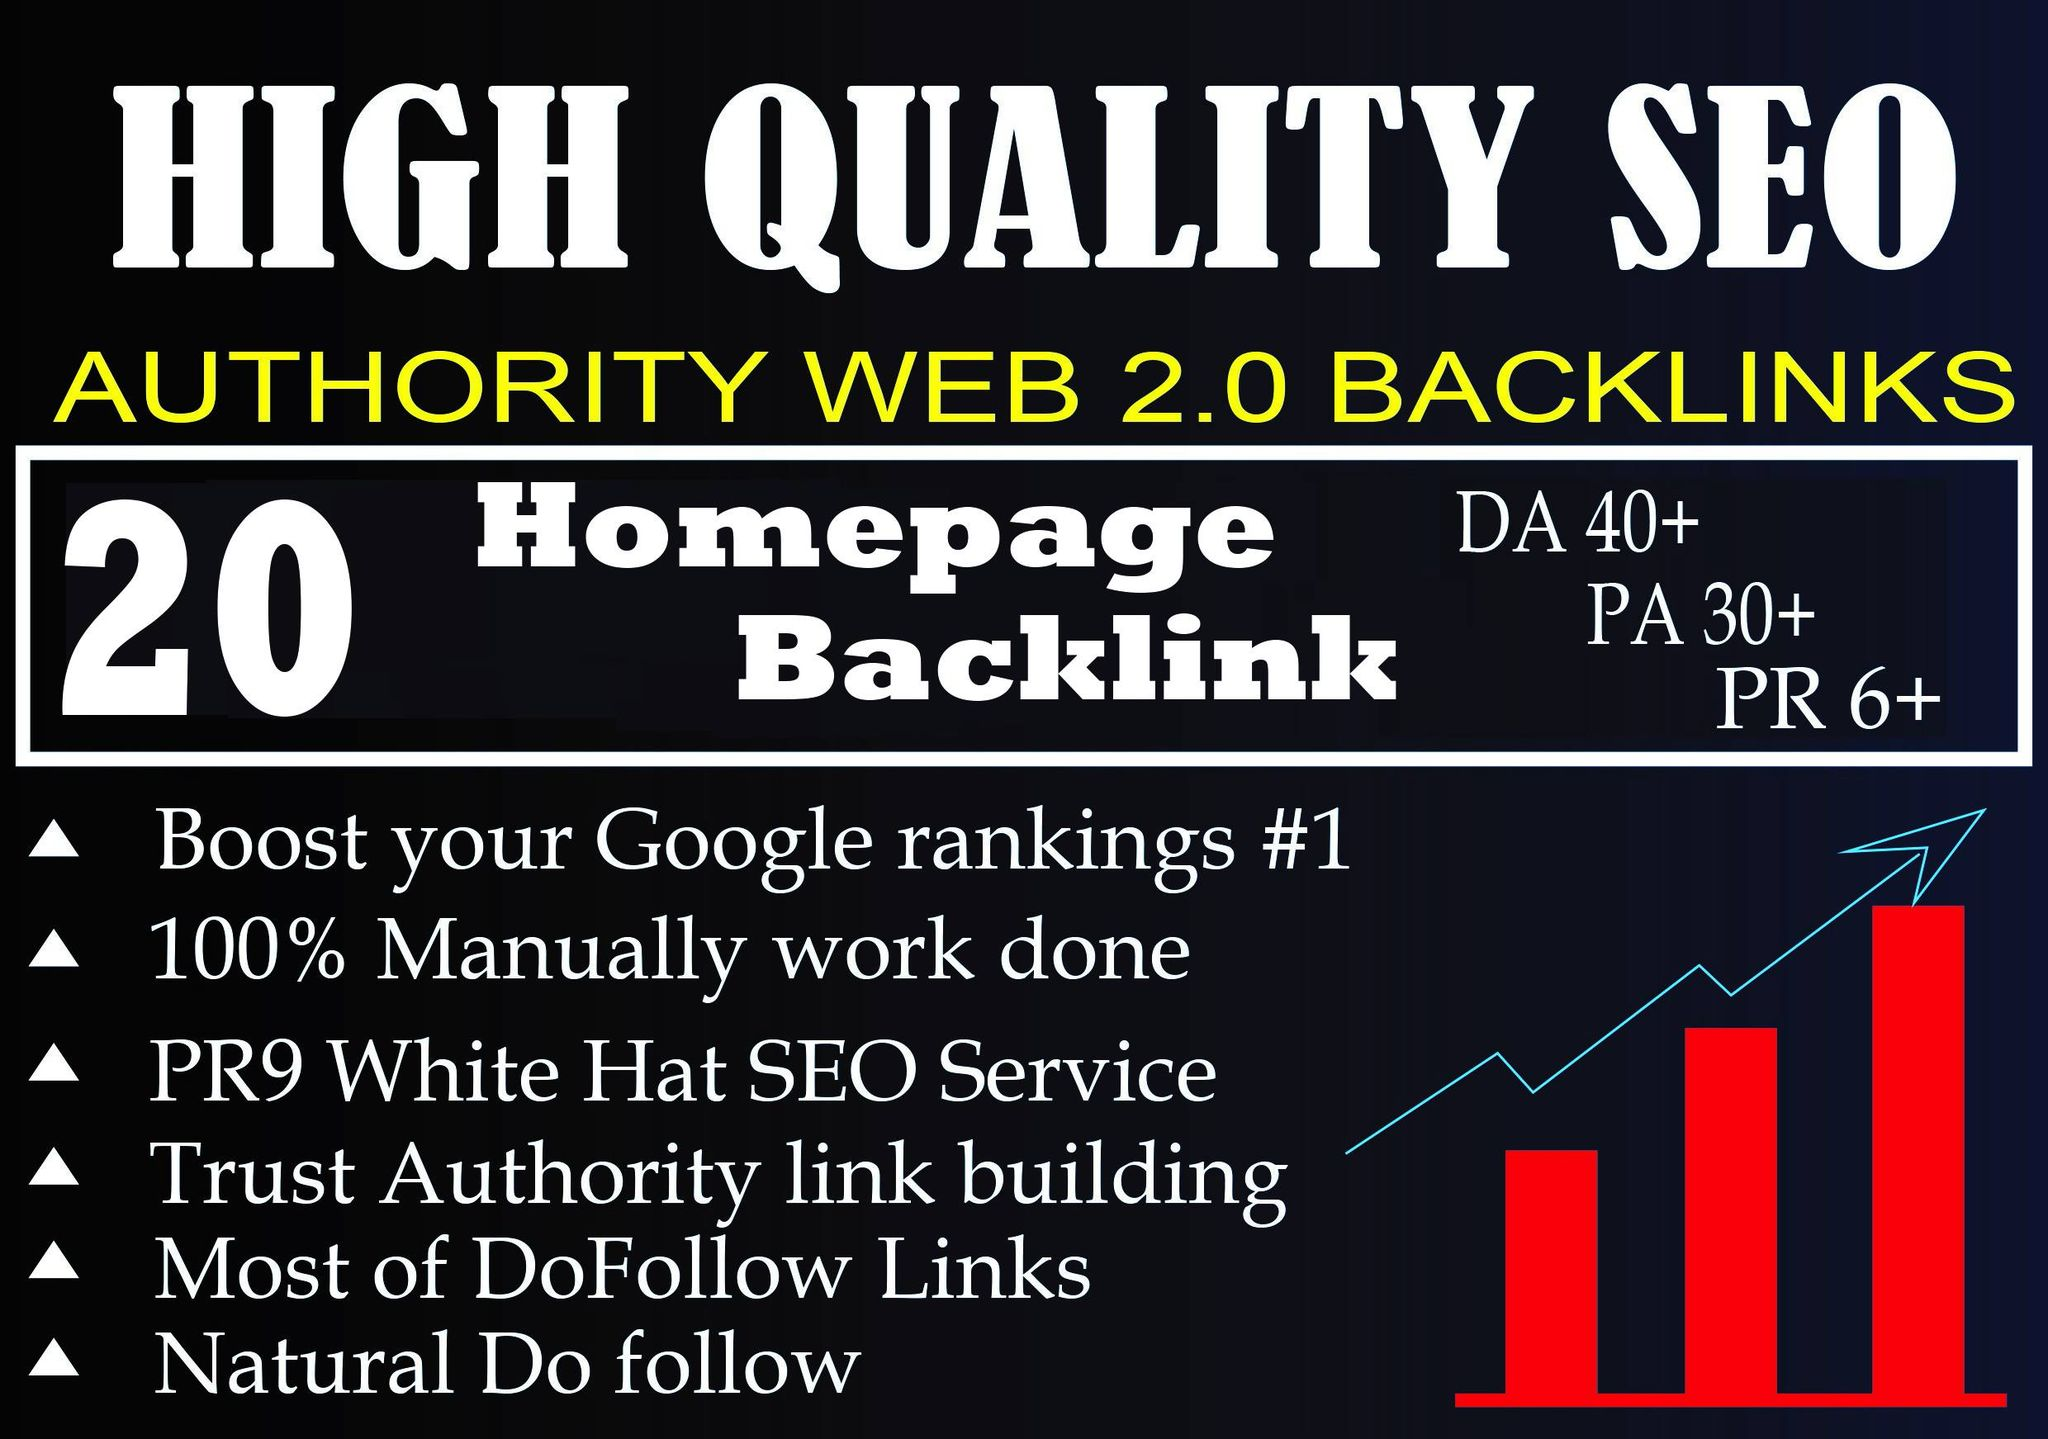 DA 40+ PA 30+ PR 6+ Web2.0 20 homepage Backlink in 100 dofollow in unique site